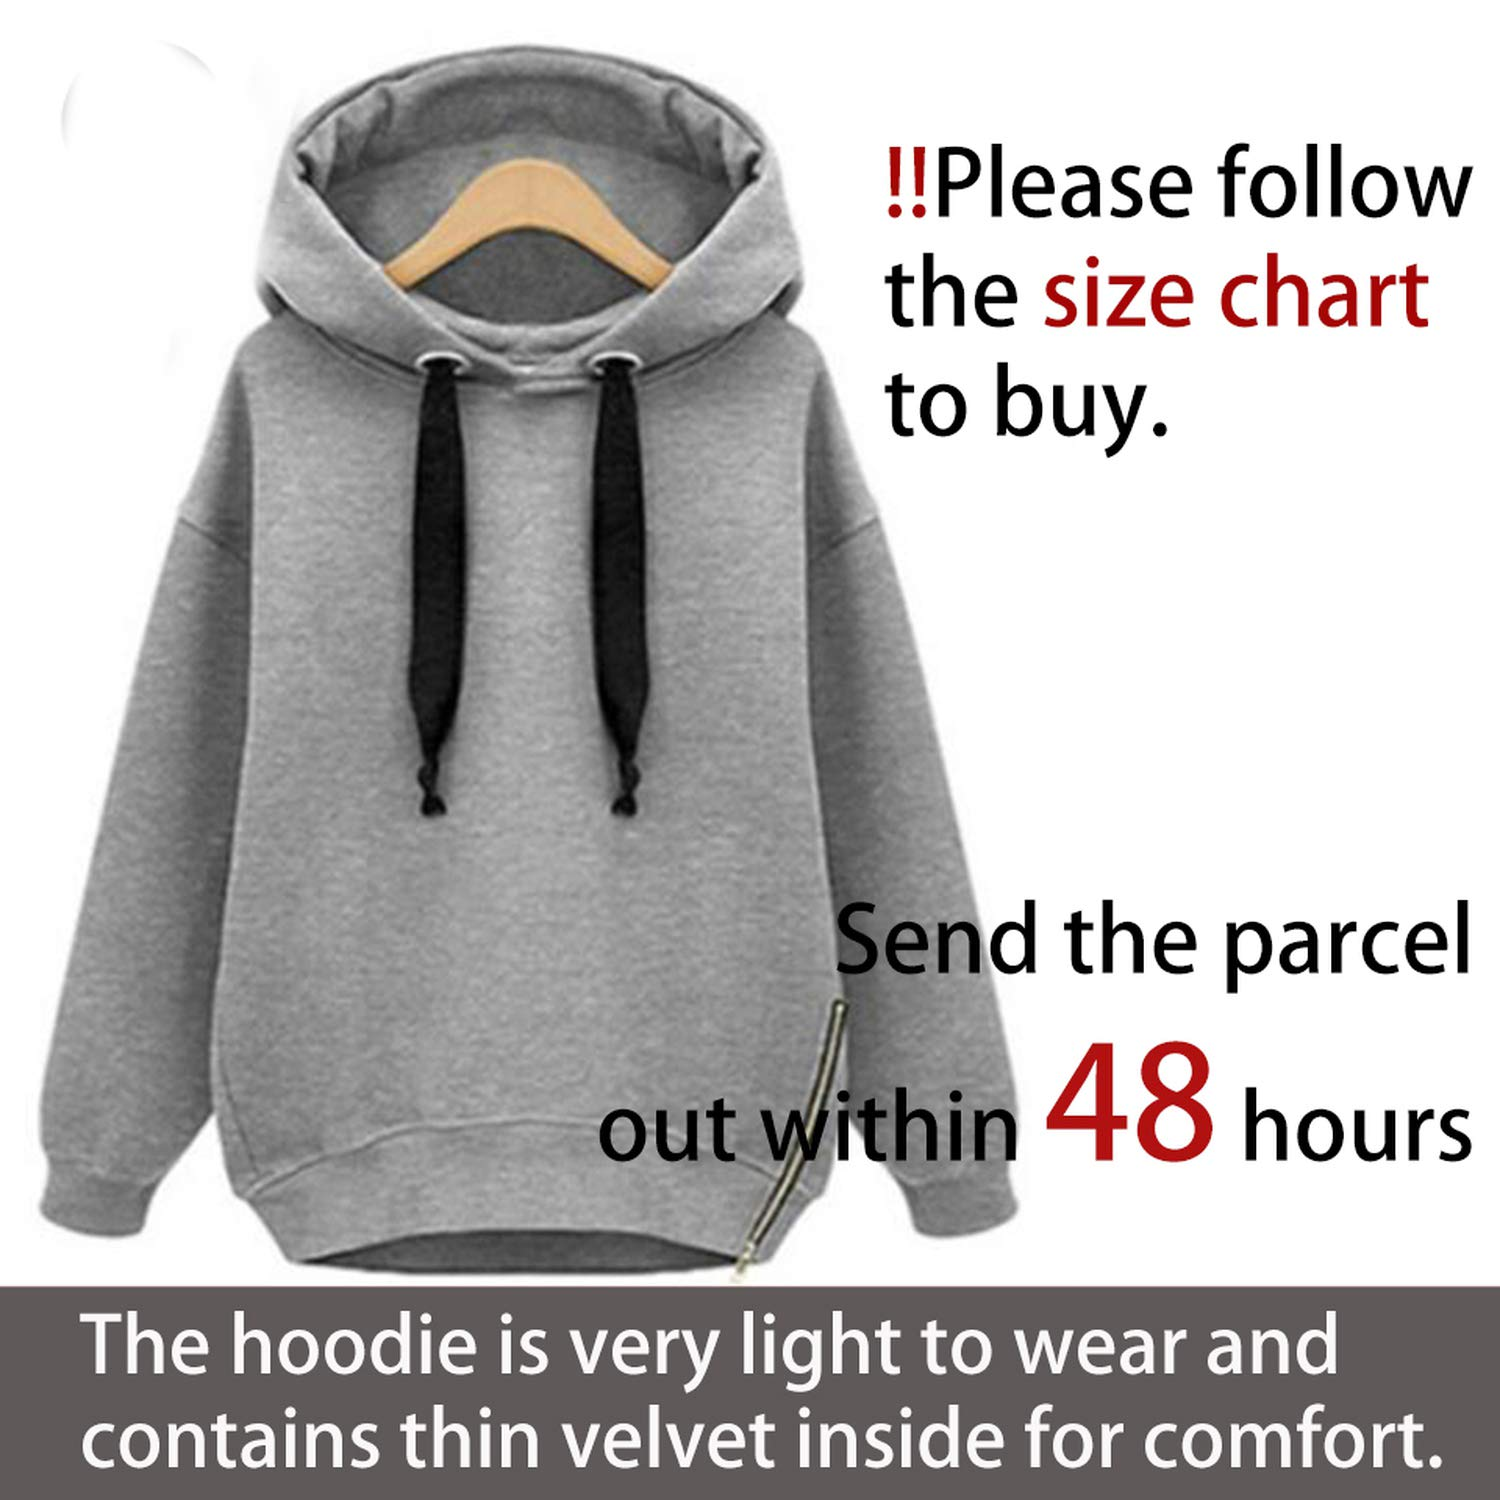 Sweatshirt Green BTS Side Zipper Hoodie Blackpink Kpop Winter Oversized Hoodie Streetwear Women Long Sleeve Solid Color Hoodies, White Hoodies, ...